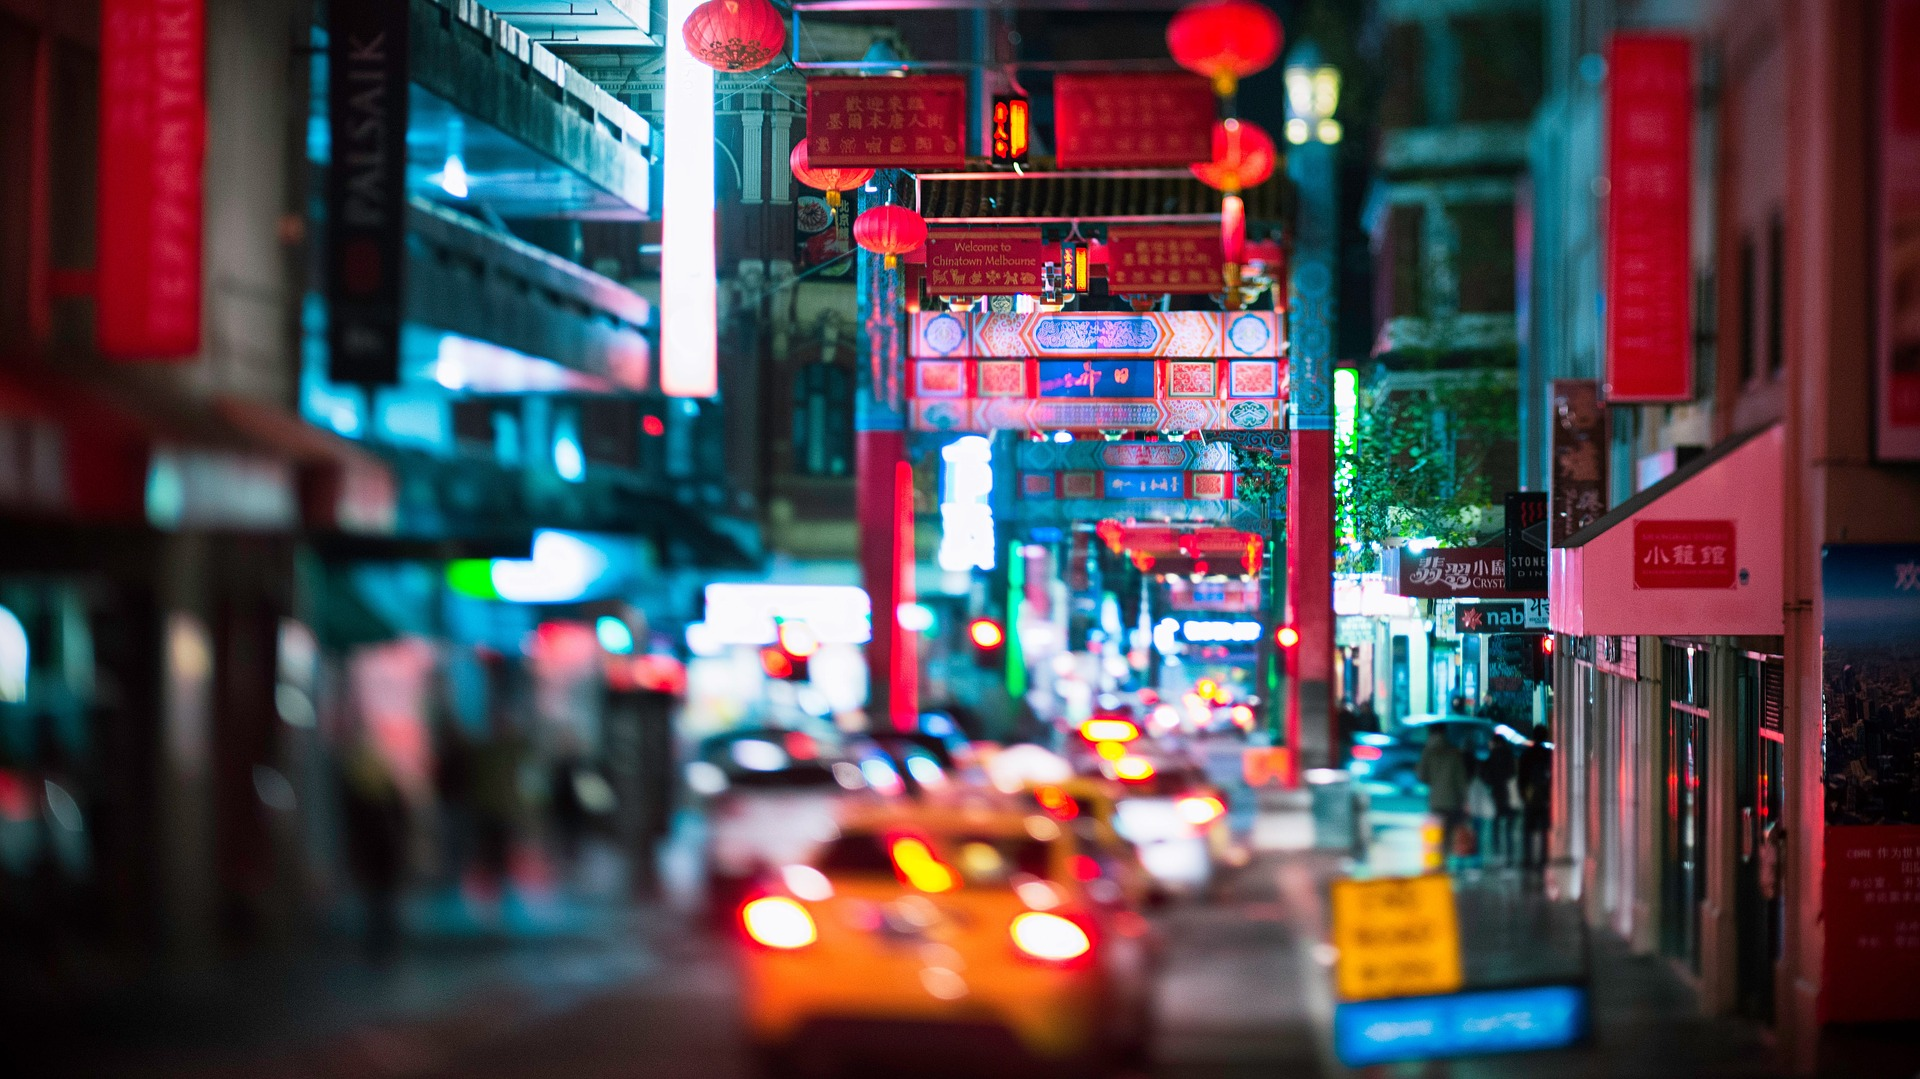 Moving to Chinatown guide